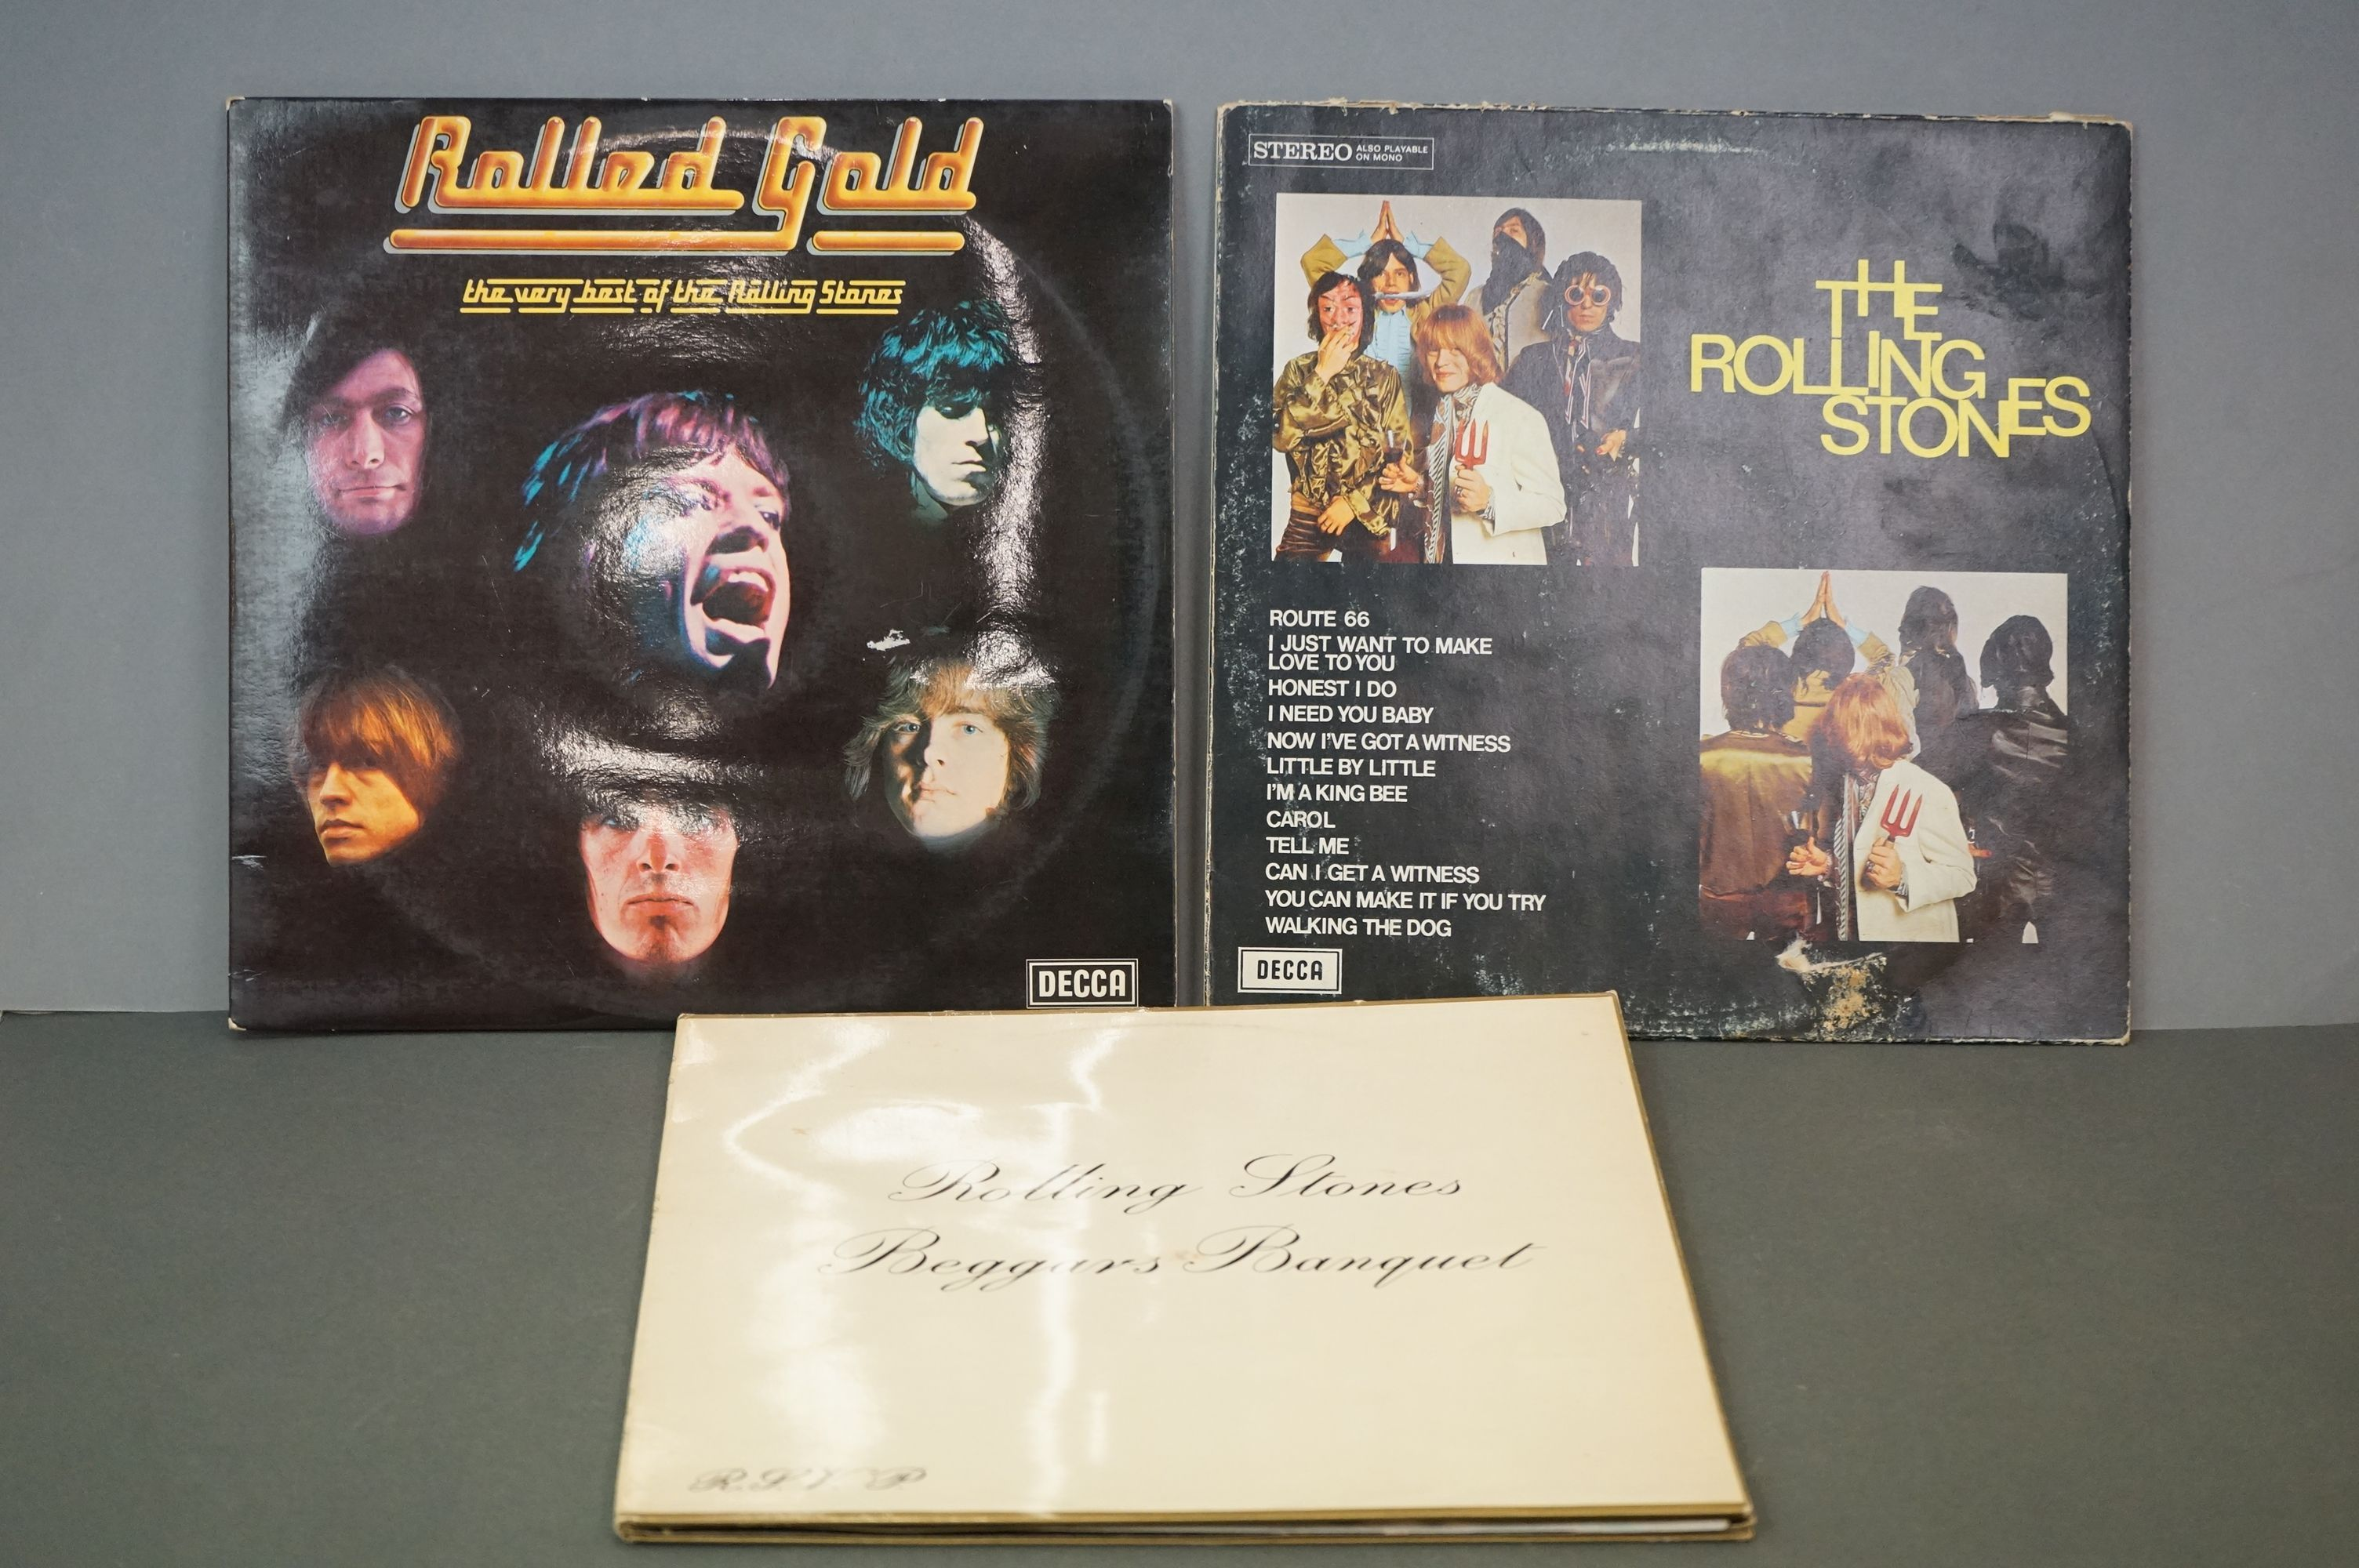 Vinyl - Rolling Stones 3 LP's to include Rolled Gold and Self Titled (both Dutch pressings), and